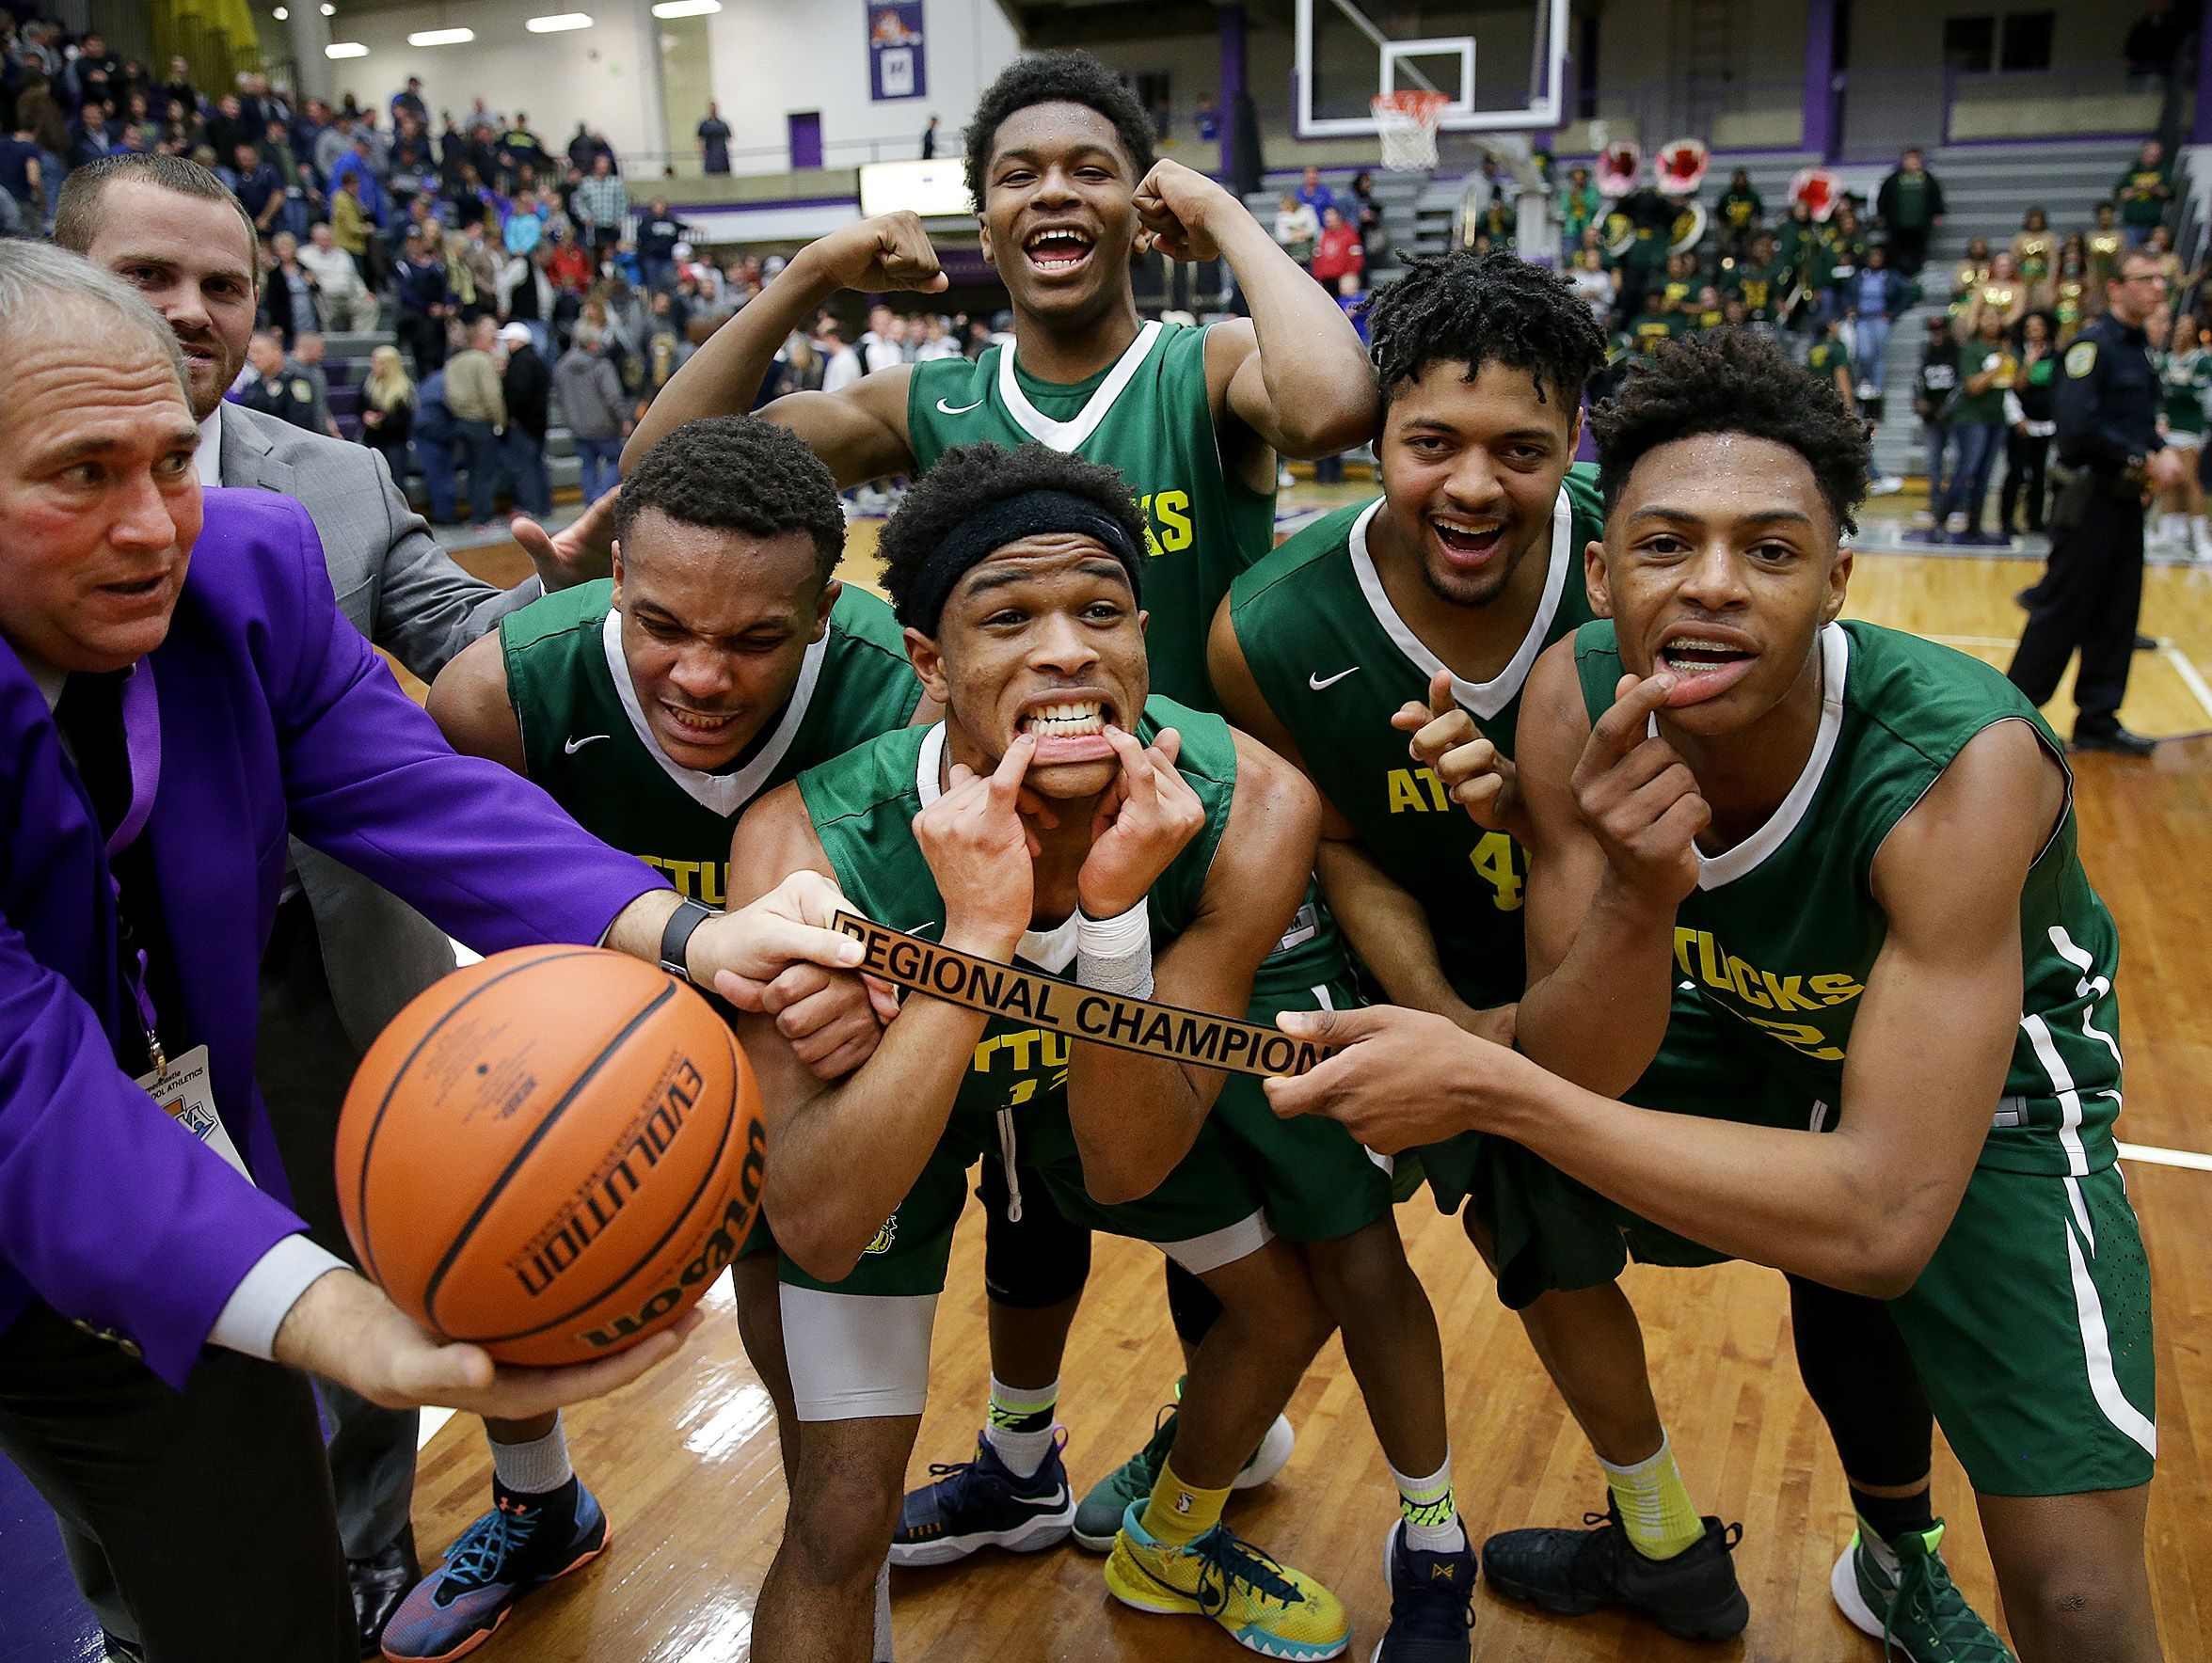 Crispus Attucks Tigers celebrate their win in the IHSAA Boys Regional championship game Saturday at the McAnally Center in Greencastle.